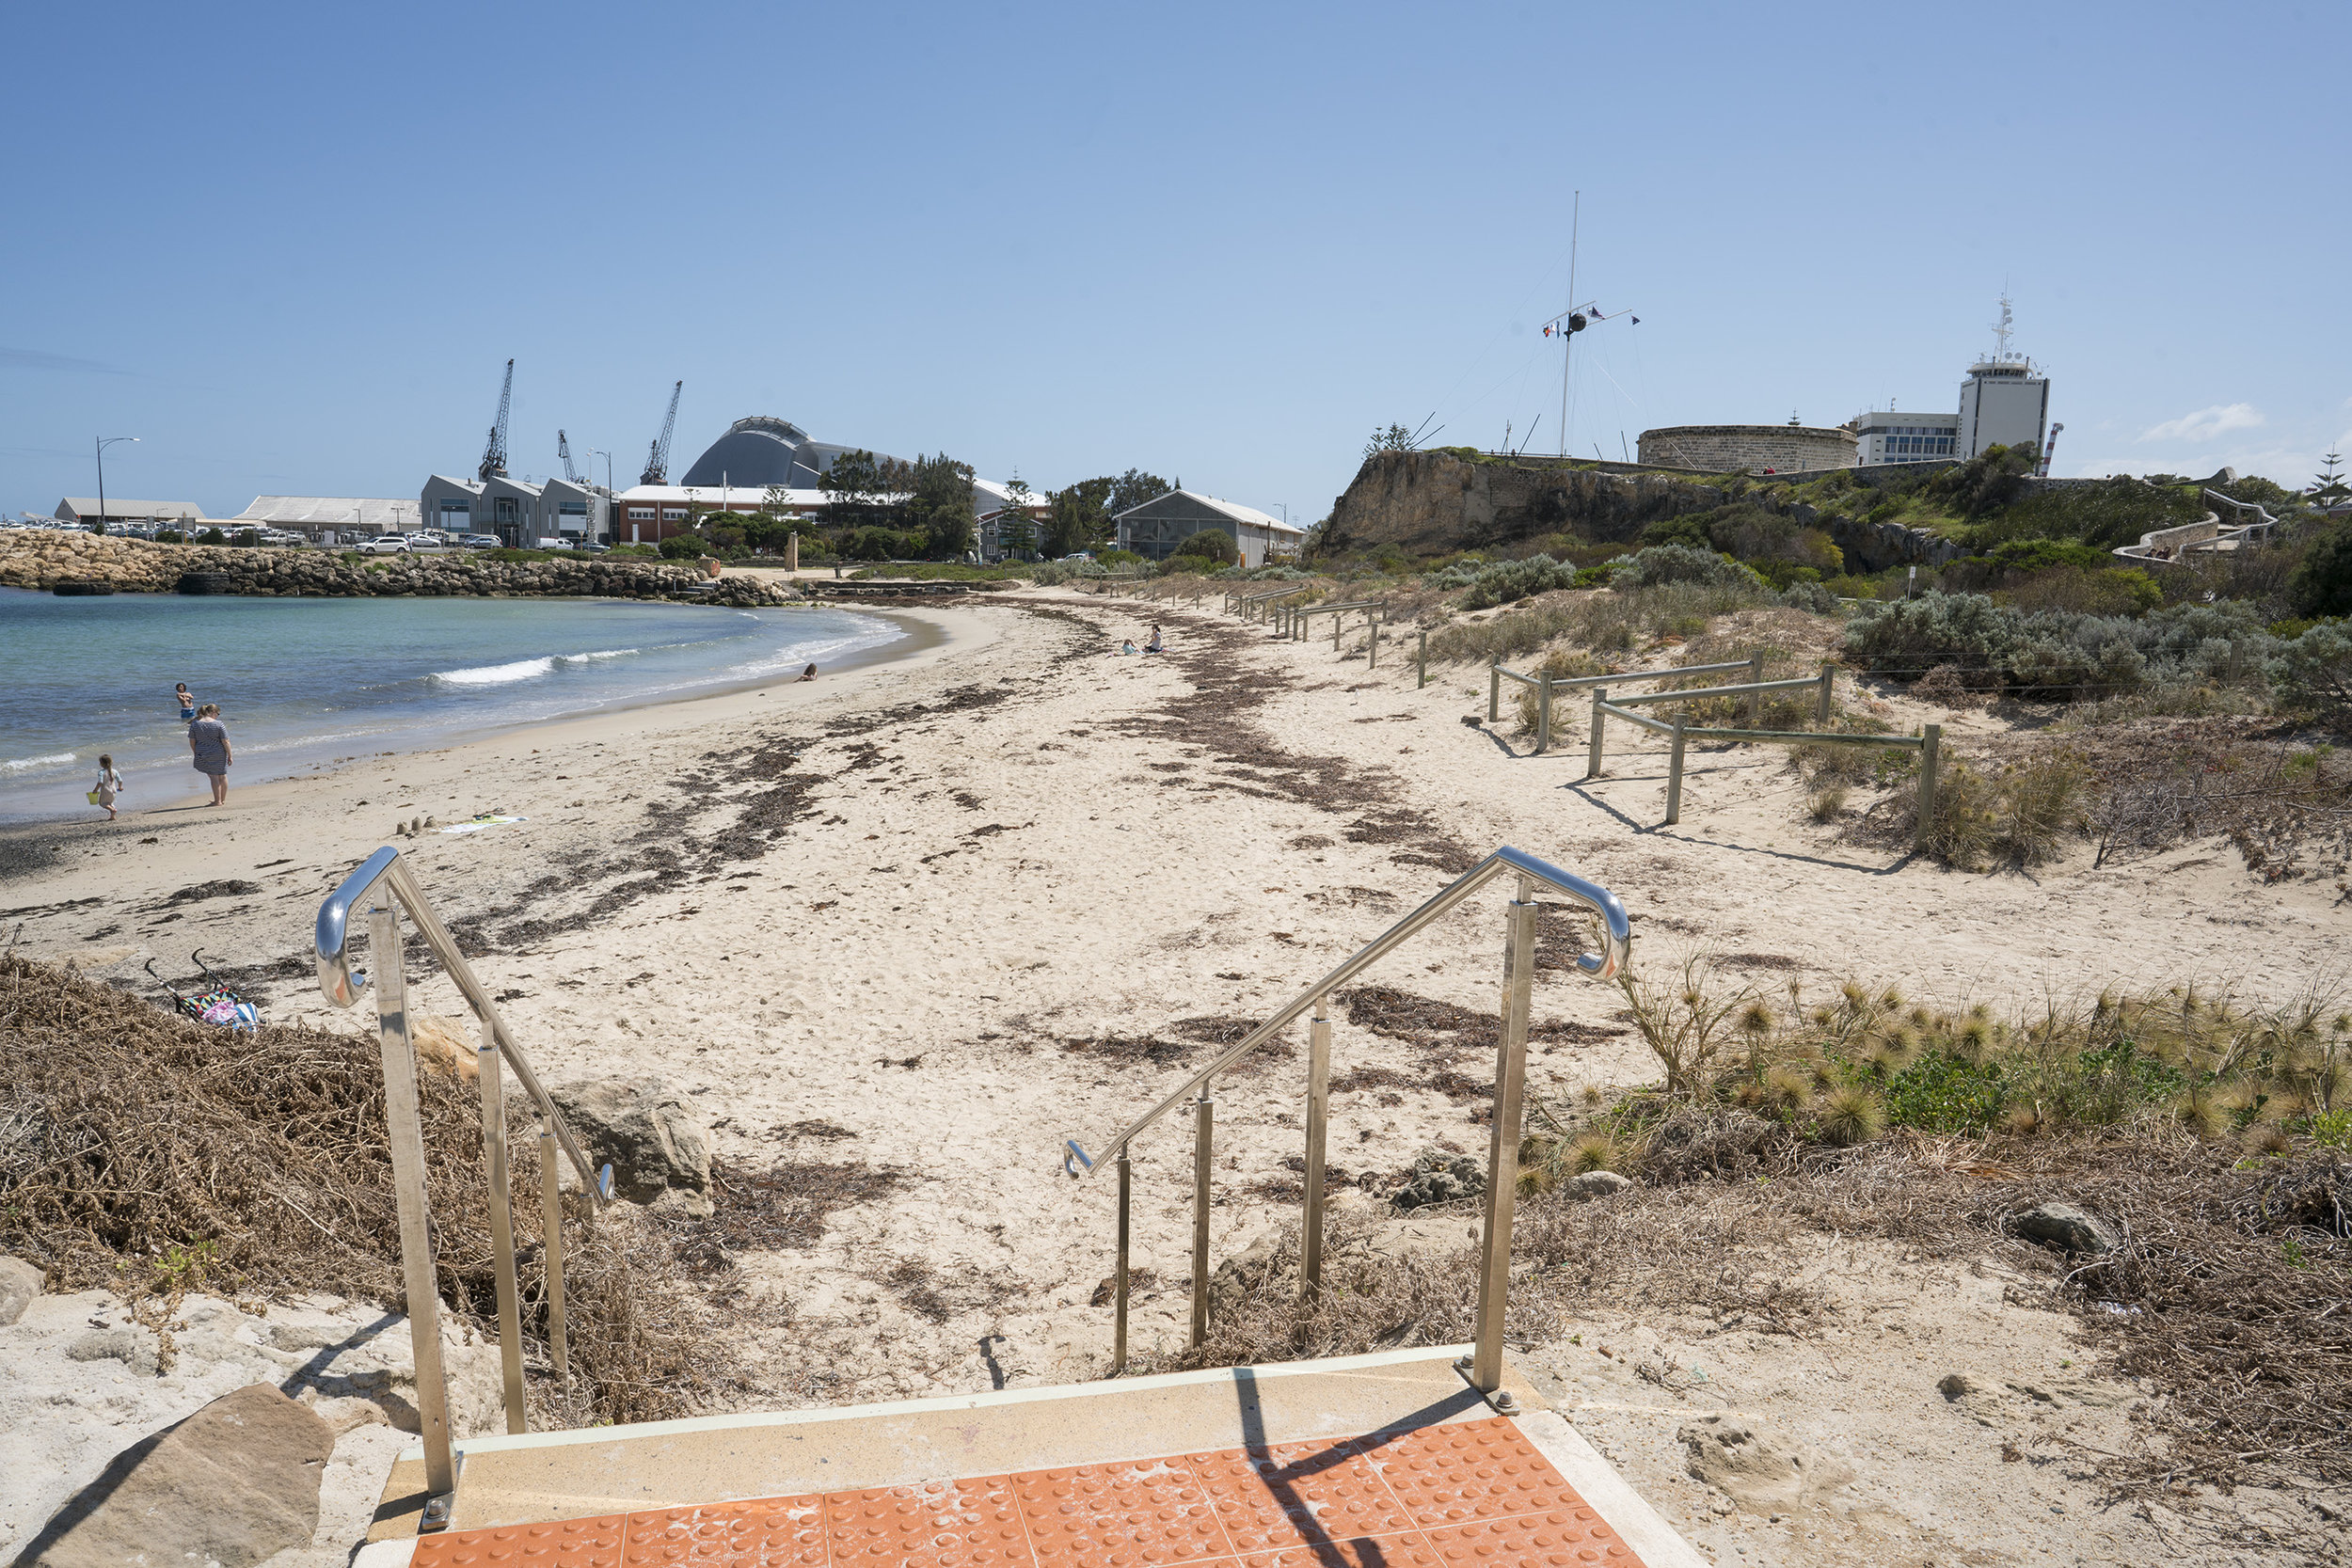 Plate 8: The walk along Bathers Beach looking back